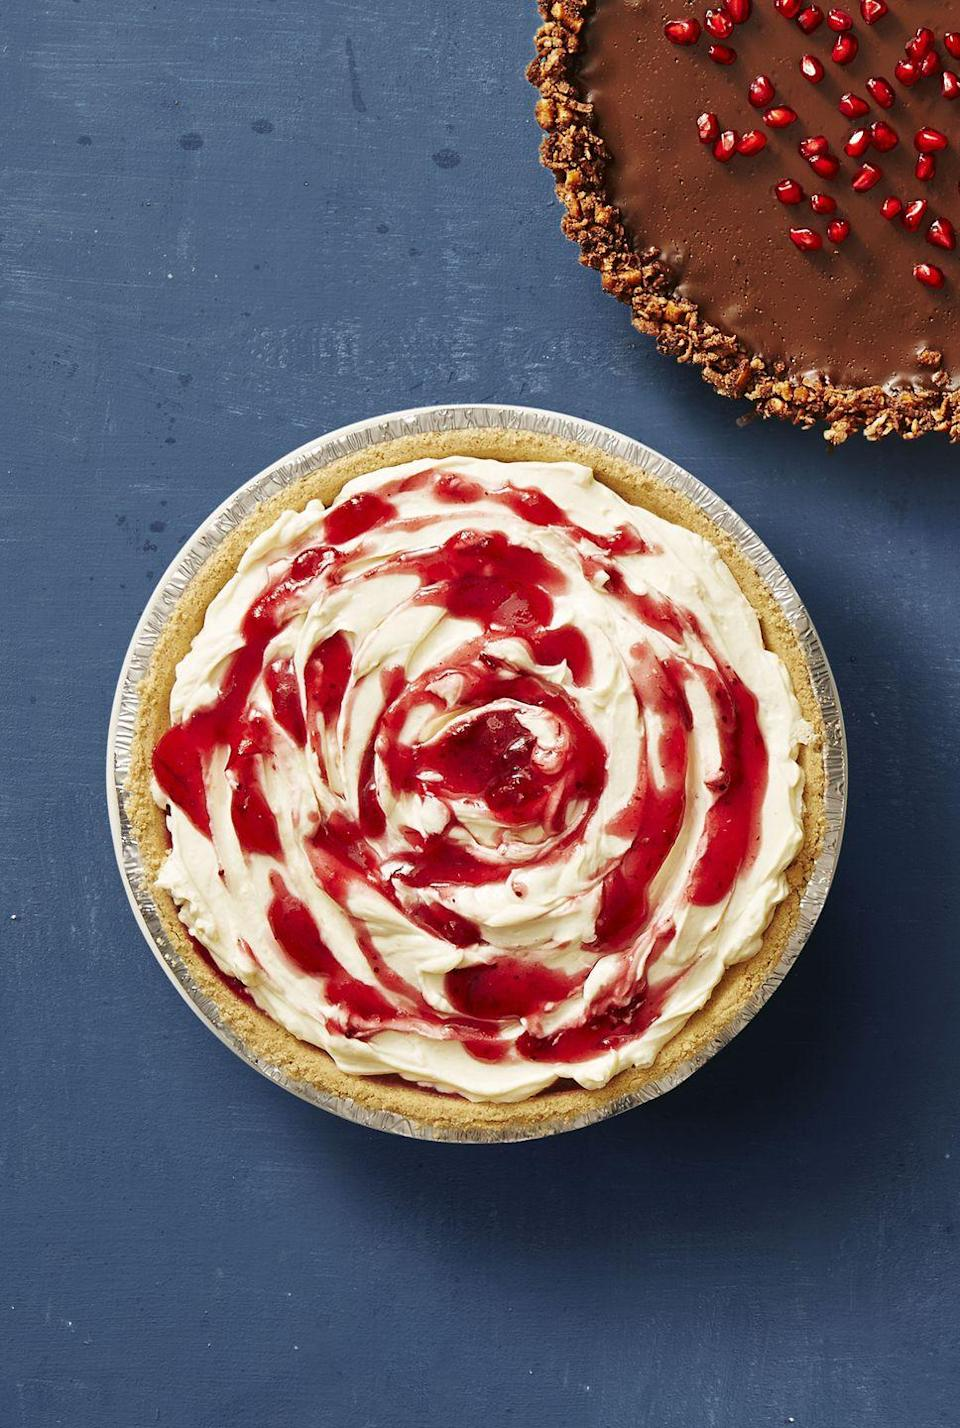 "<p><em>Psst! </em>This easy cheesecake requires zero oven time, so you don't have to deal with the water bath or worry about cracking.</p><p><em><a href=""https://www.goodhousekeeping.com/food-recipes/a41239/no-bake-cranberry-cheesecake-recipe/"" rel=""nofollow noopener"" target=""_blank"" data-ylk=""slk:Get the recipe for No-Bake Cranberry Cheesecake »"" class=""link rapid-noclick-resp"">Get the recipe for No-Bake Cranberry Cheesecake »</a></em></p><p><strong>RELATED: </strong><a href=""https://www.goodhousekeeping.com/food-recipes/cooking/g5106/how-to-make-cheesecake/"" rel=""nofollow noopener"" target=""_blank"" data-ylk=""slk:How to Make Cheesecake From Scratch"" class=""link rapid-noclick-resp"">How to Make Cheesecake From Scratch</a></p>"